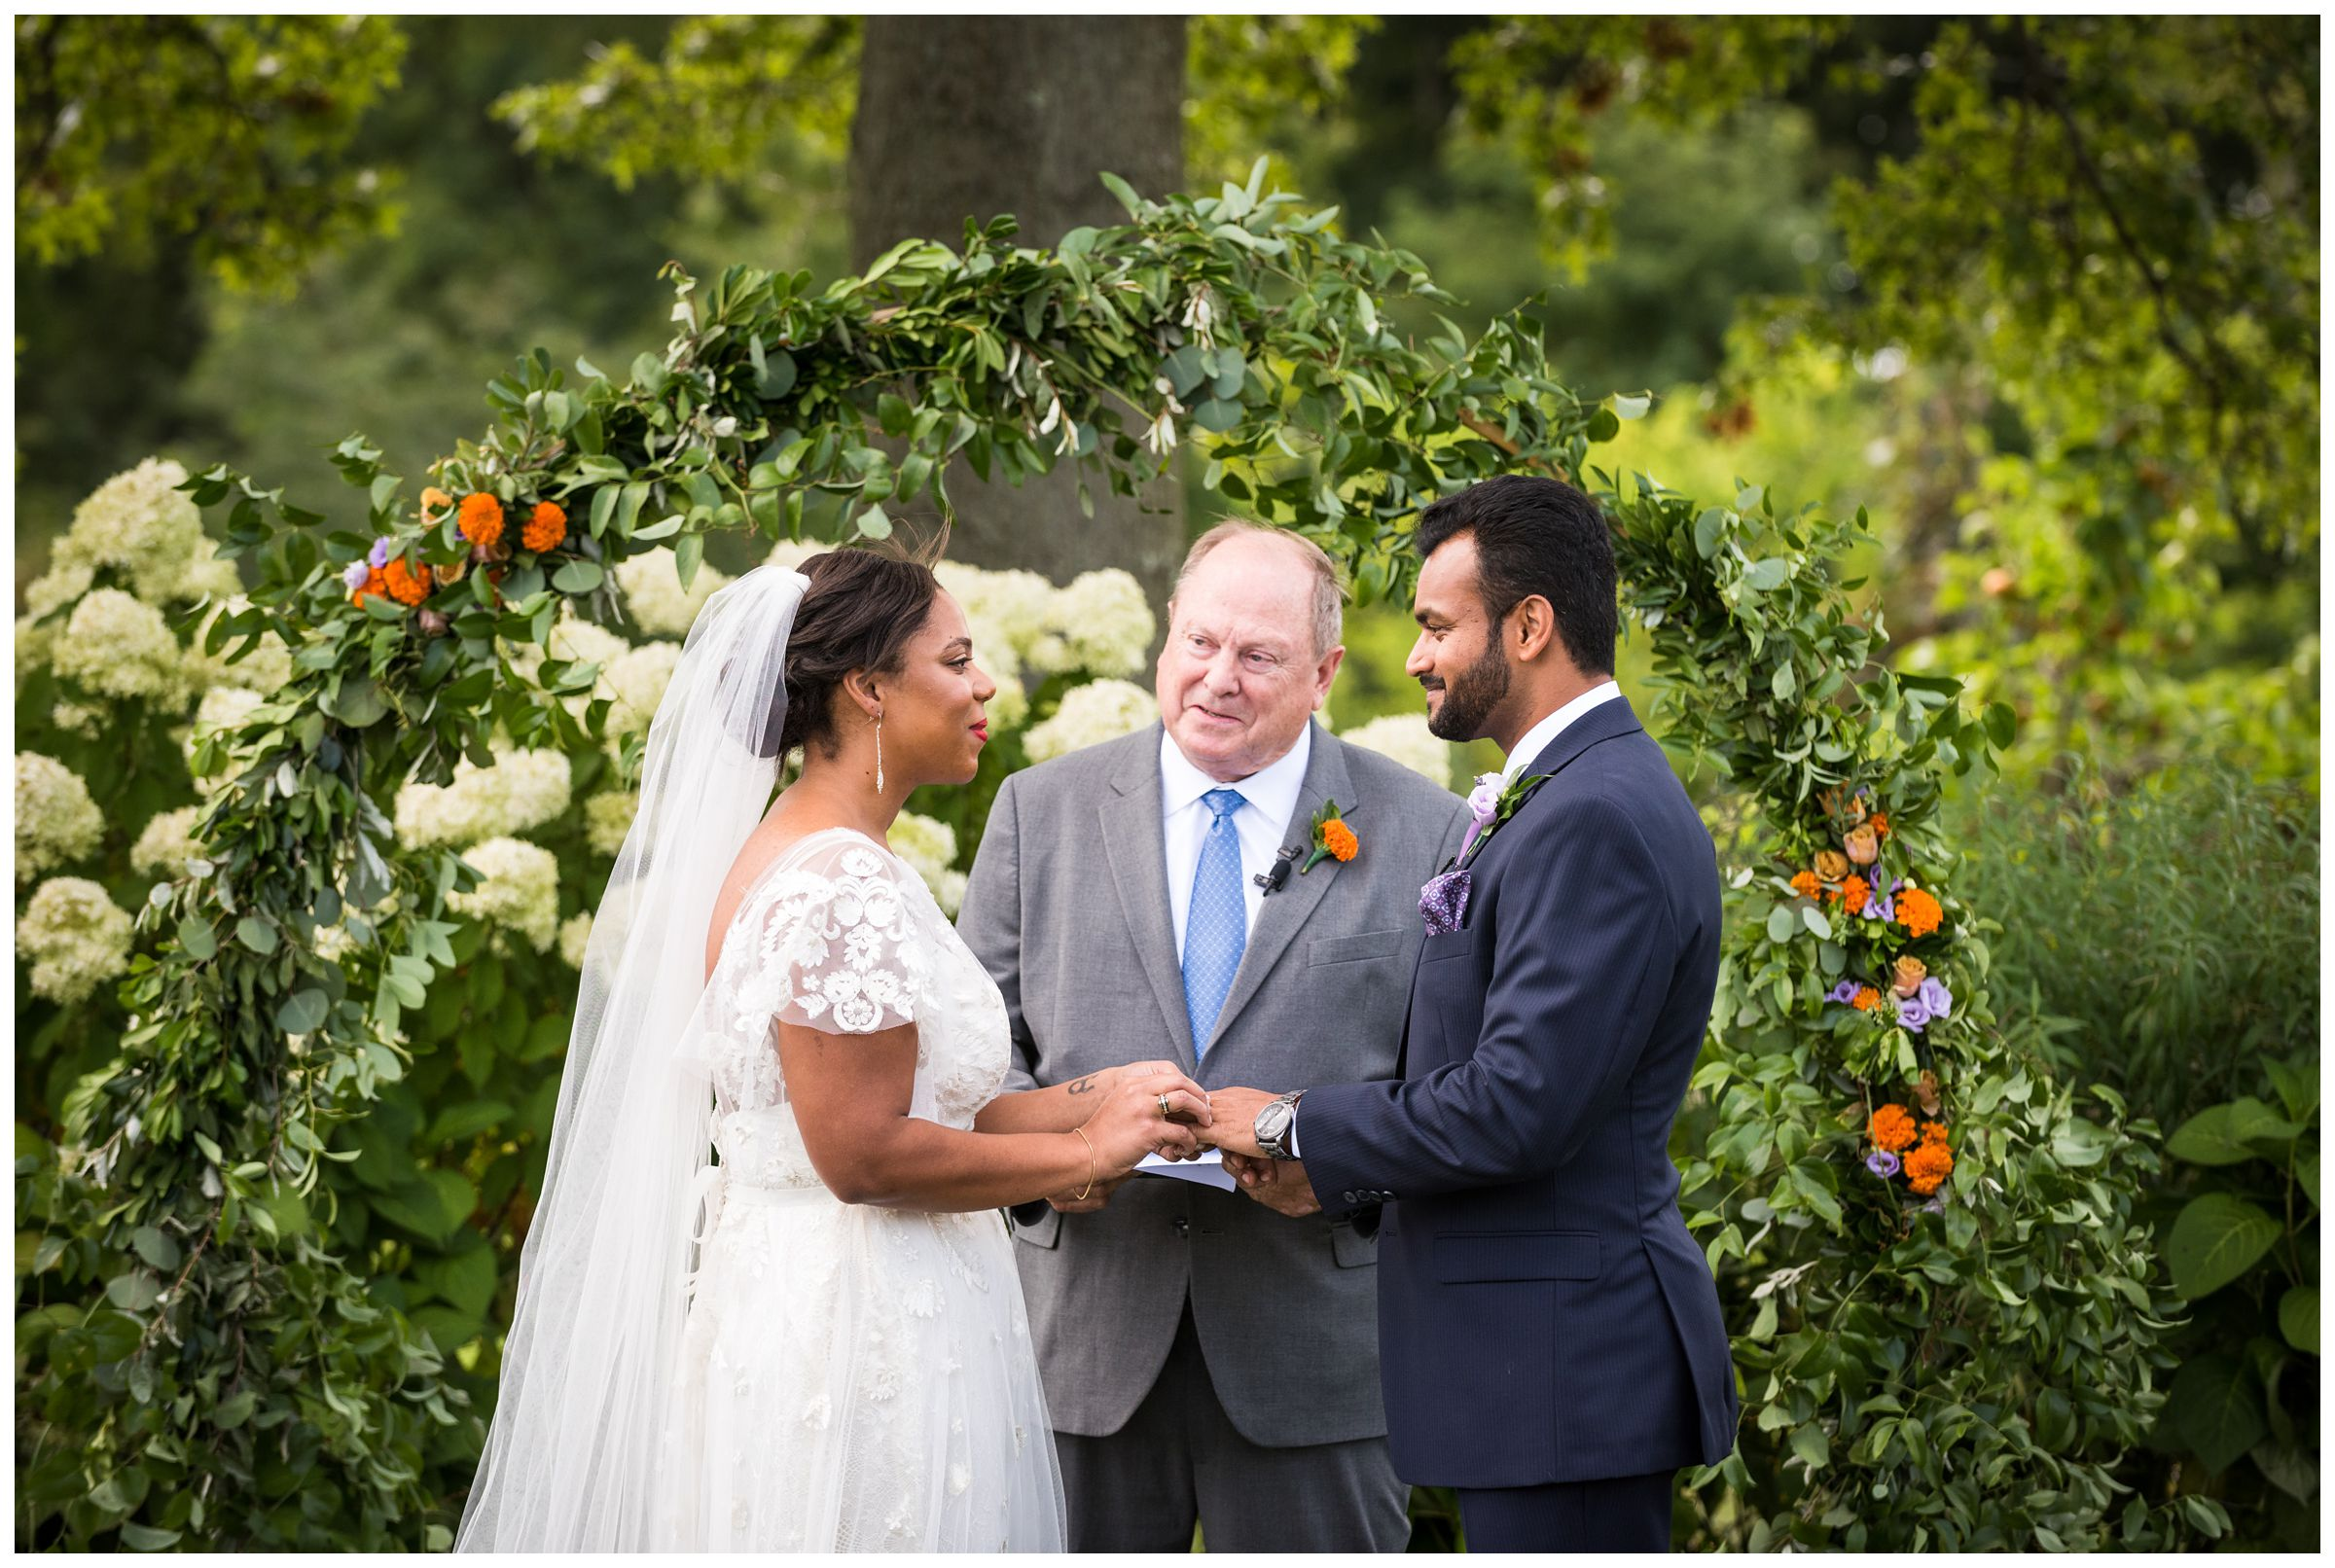 bride an groom exchange ring during summer wedding in front of floral arch with marigolds at Jorgensen Farms